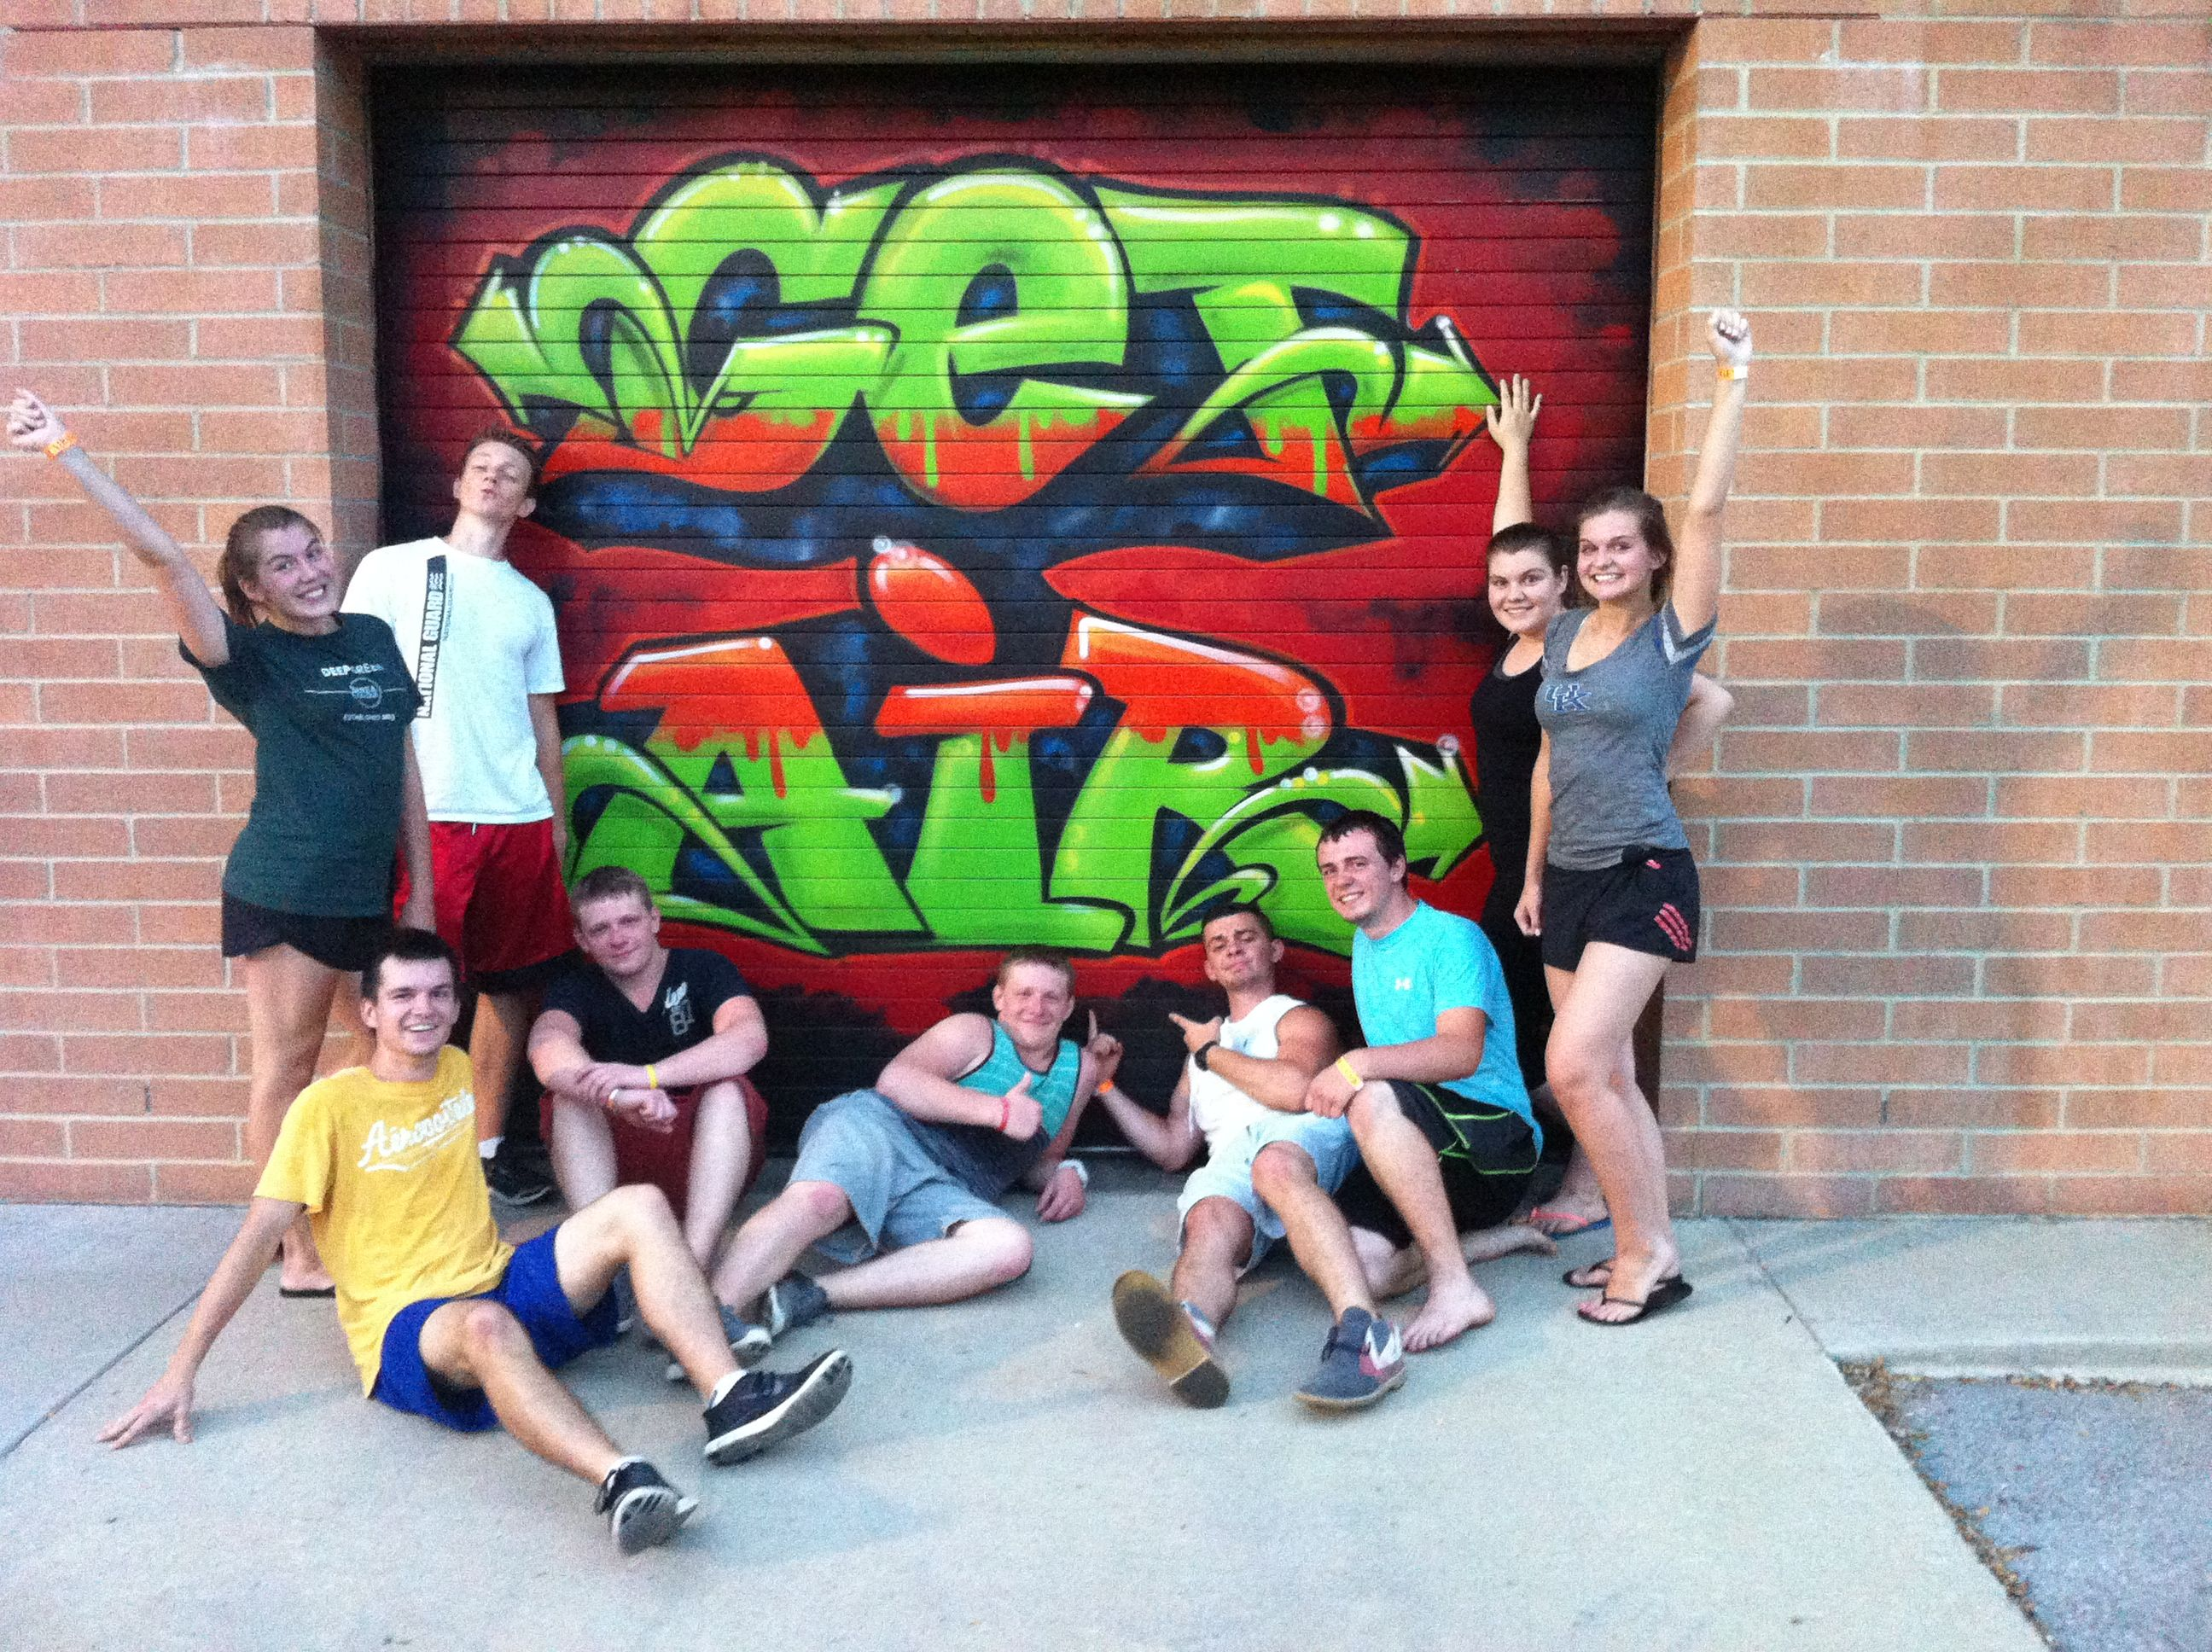 Russian exchange students partying at GET AIR LEX (With